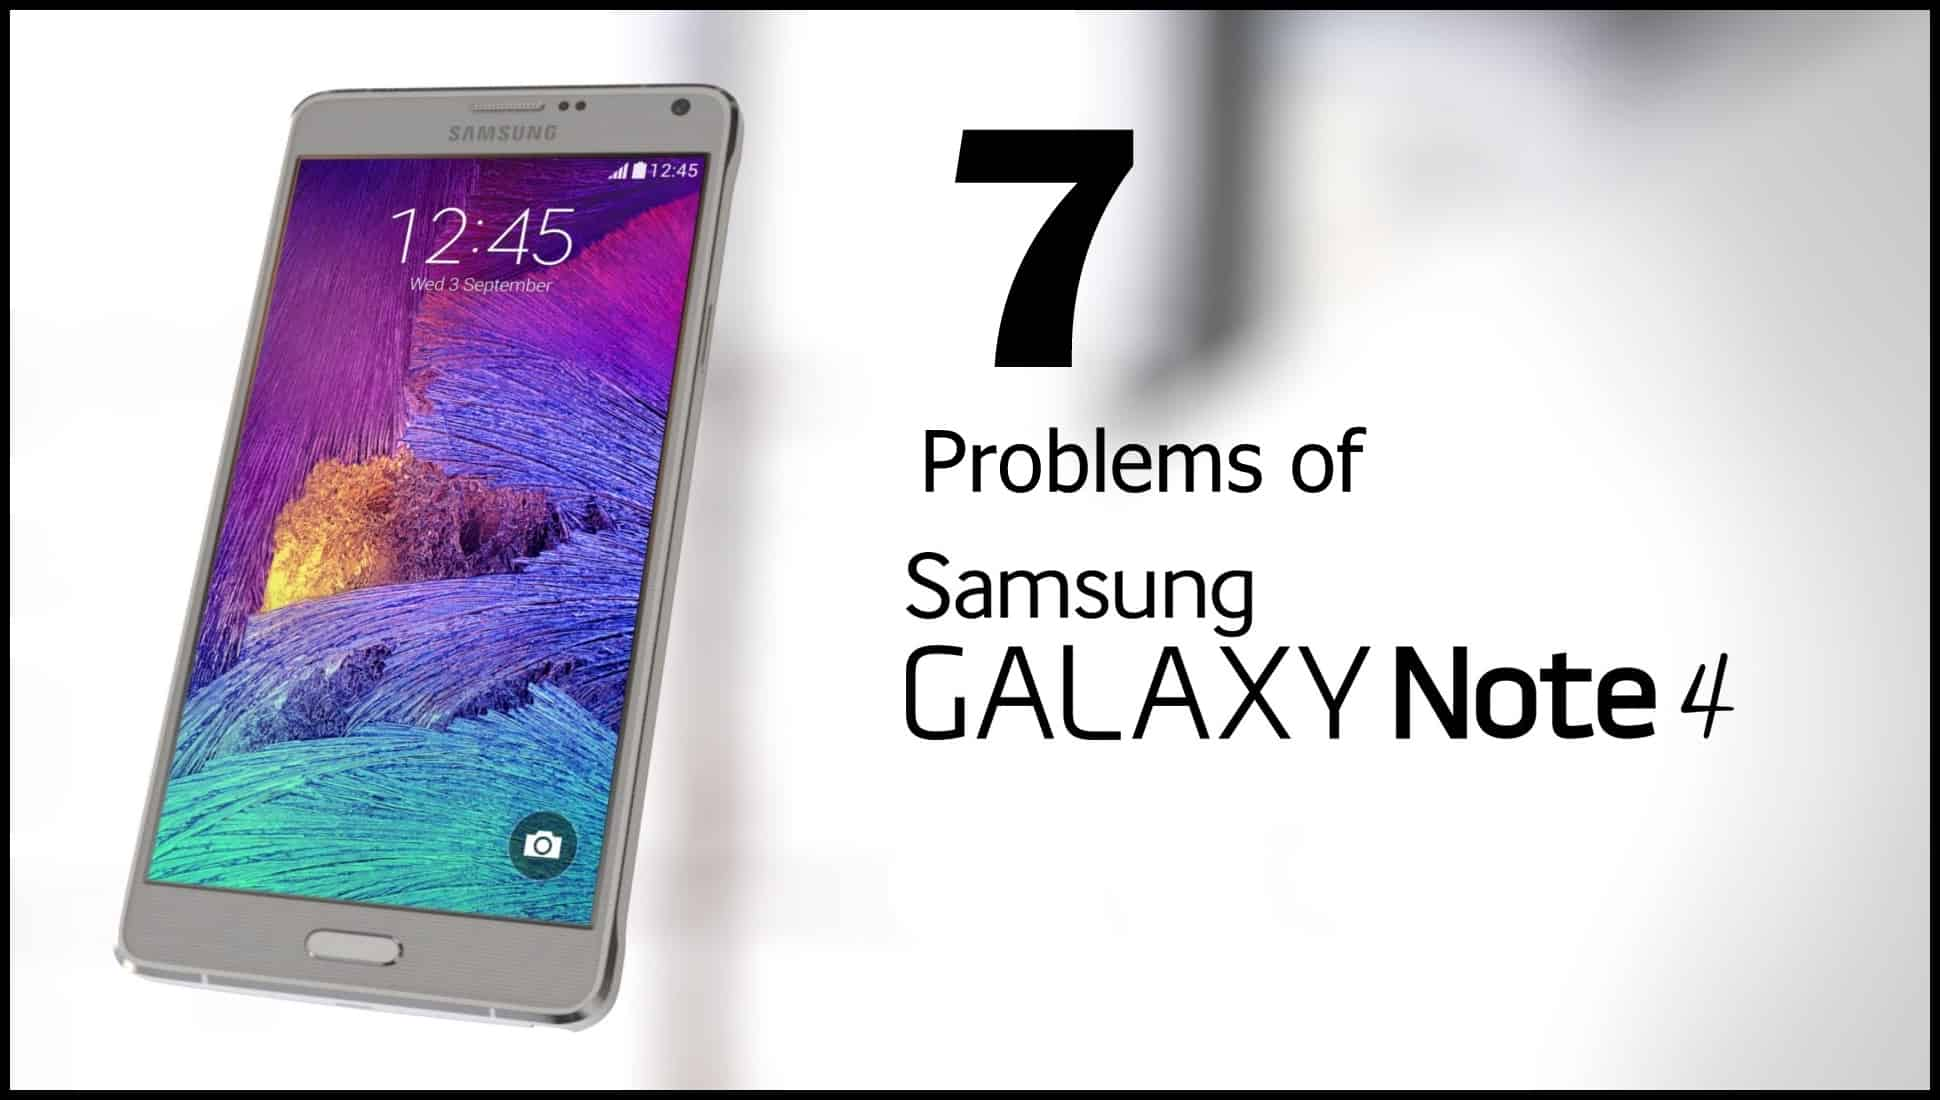 Samsung-Galaxy-Note-4 problems-